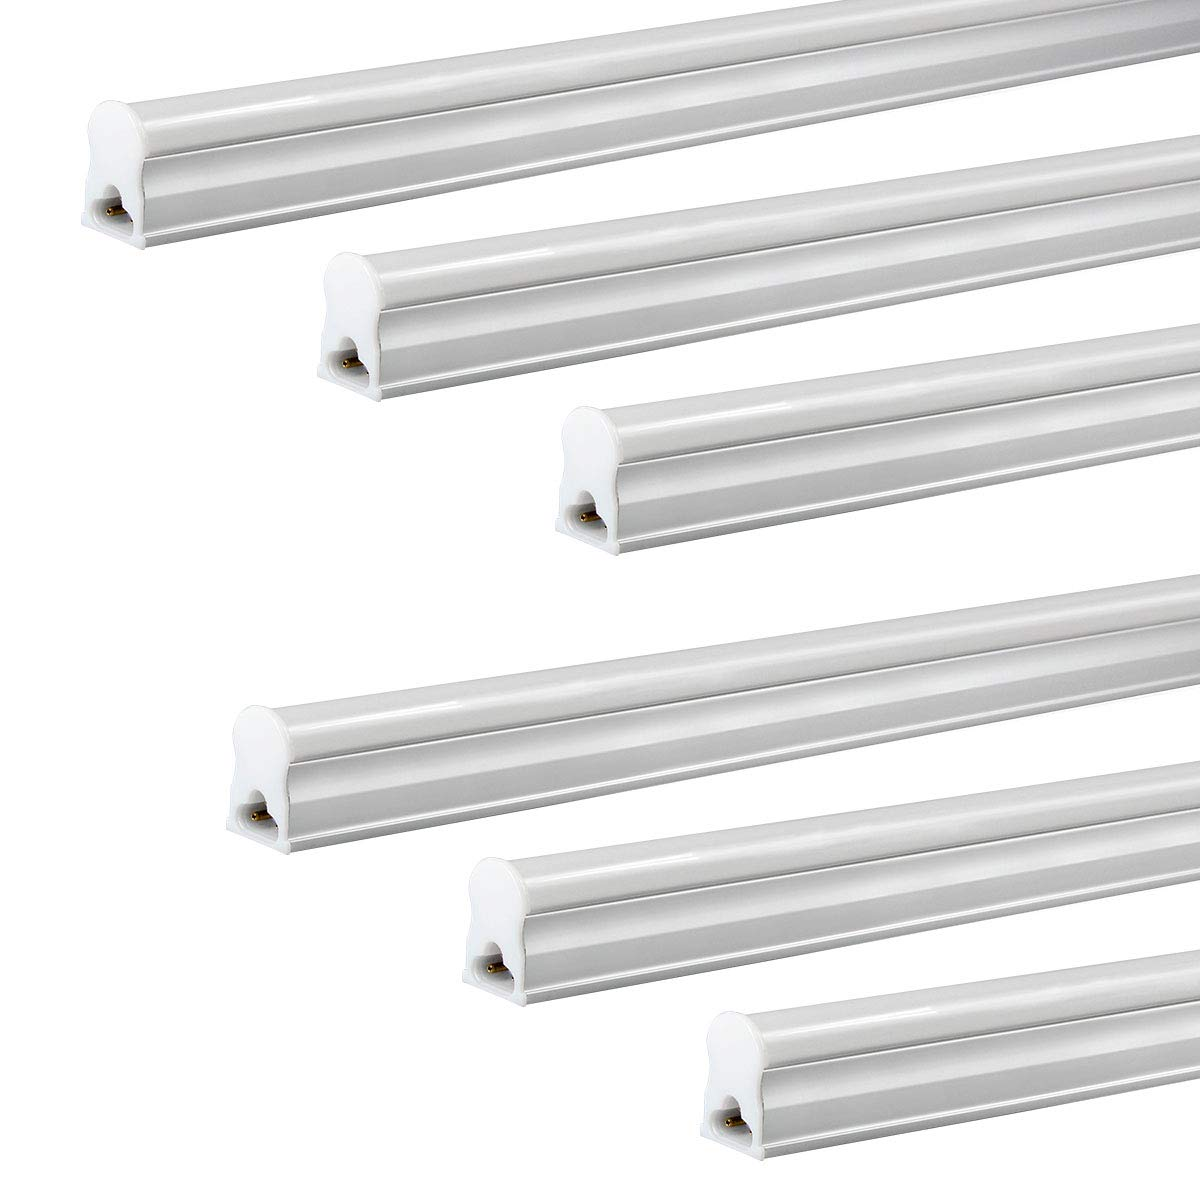 LED T5 Integrated Single Fixture, 4FT 2200lm, 5000K (Super Bright White), 20W, Utility Shop Light, Ceiling and Under Cabinet Light, Corded Electric with Built-in ON/Off Switch 6Pack VVVLIGHT